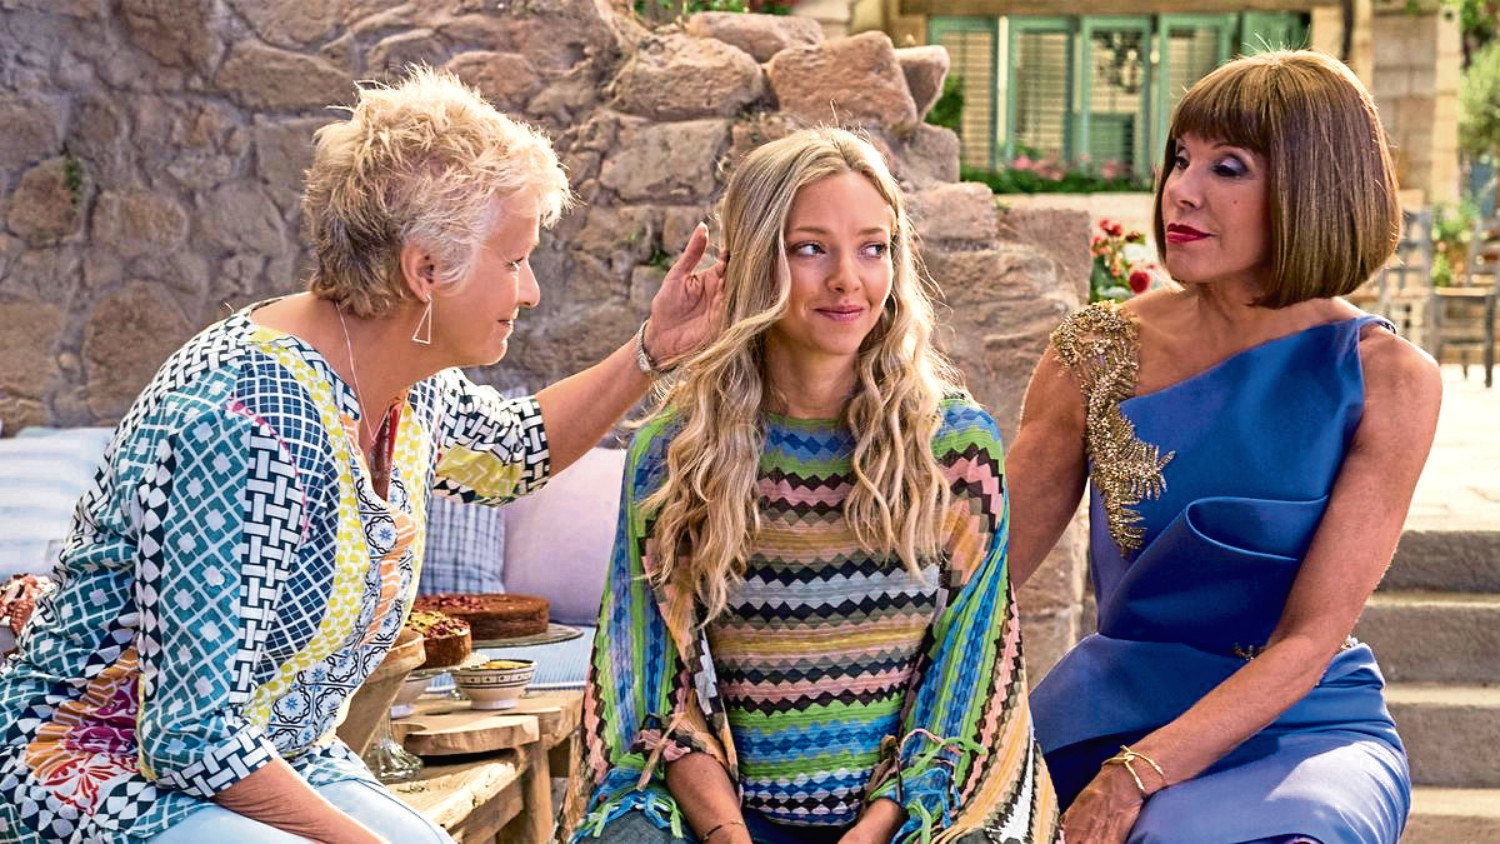 Ross King wants more musicals like Mamma Mia